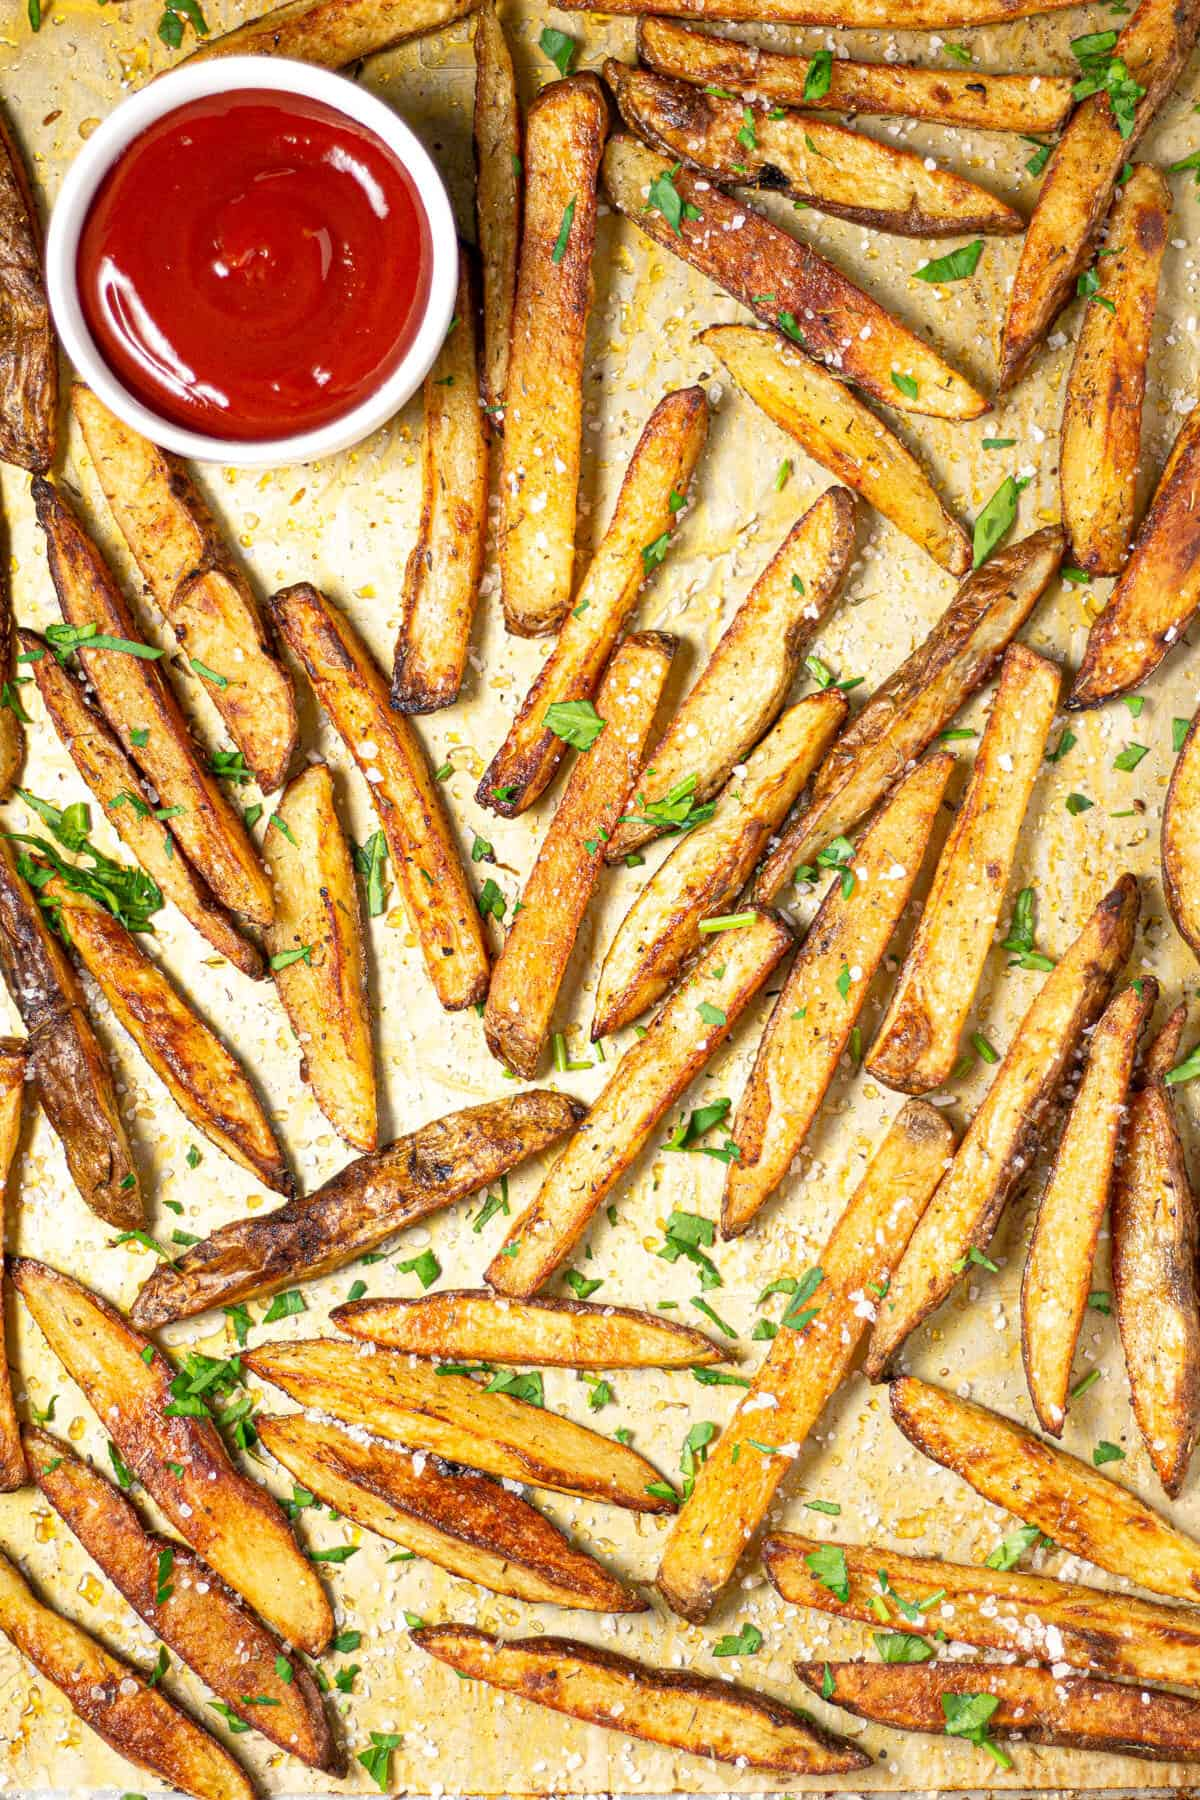 Parchment lined baking sheet with freshly baked French fries and a small bowl of ketchup